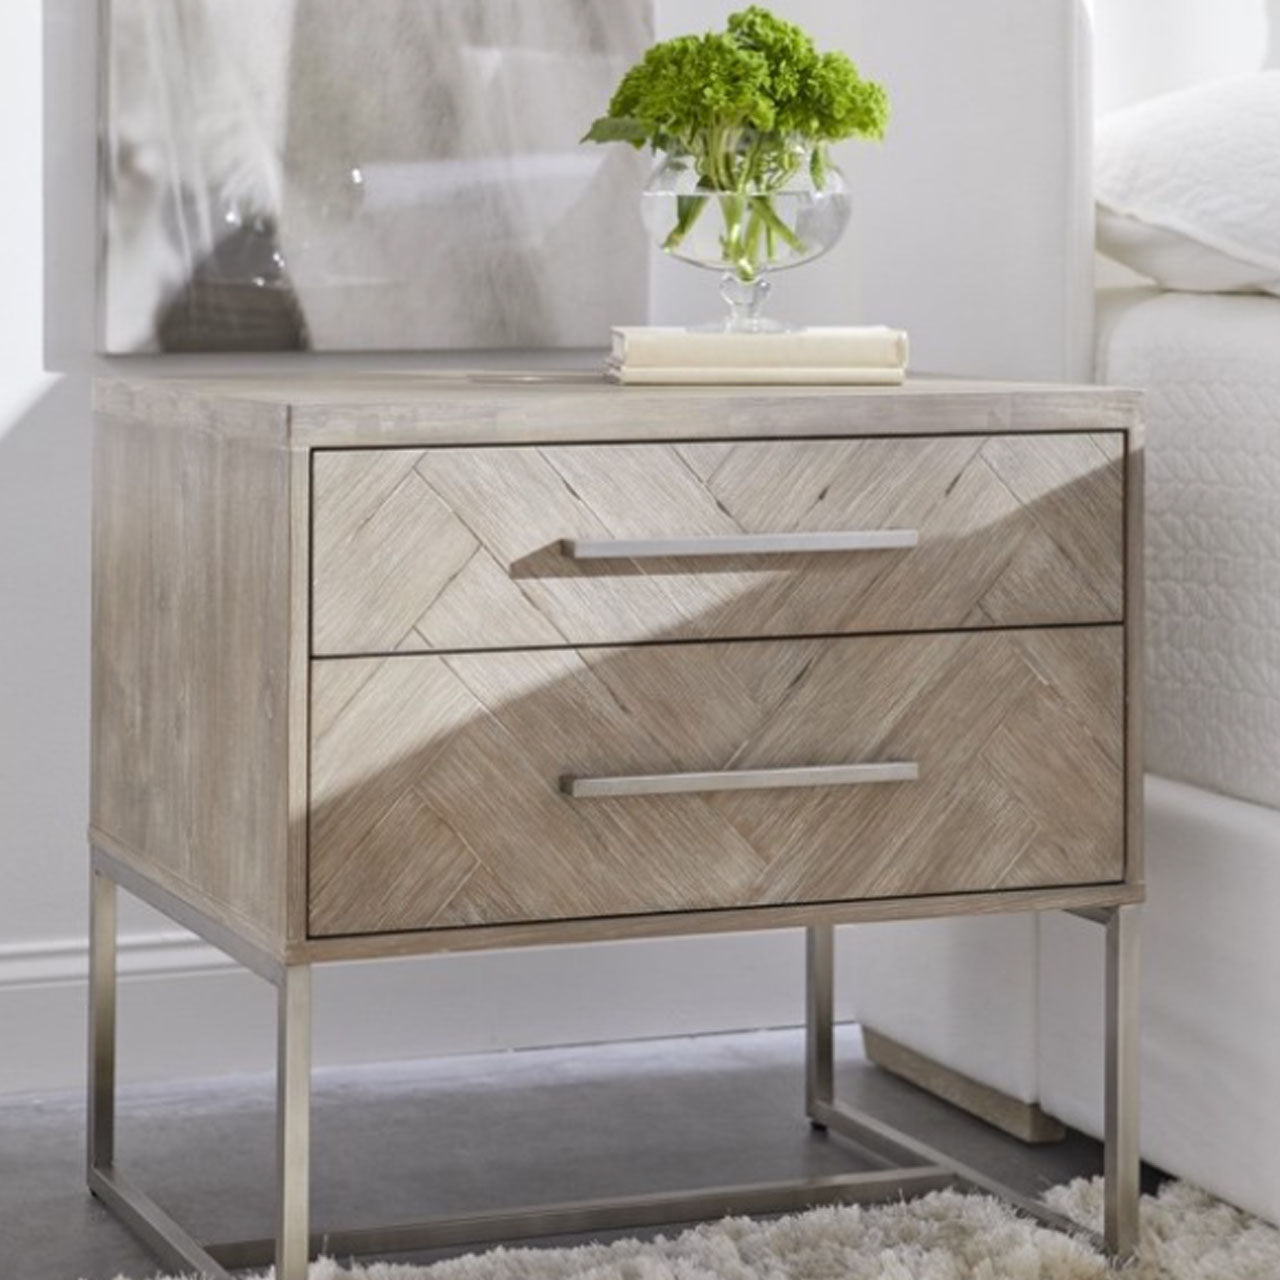 Tiffany Hunter Home & Design Center Night Stands for Sale